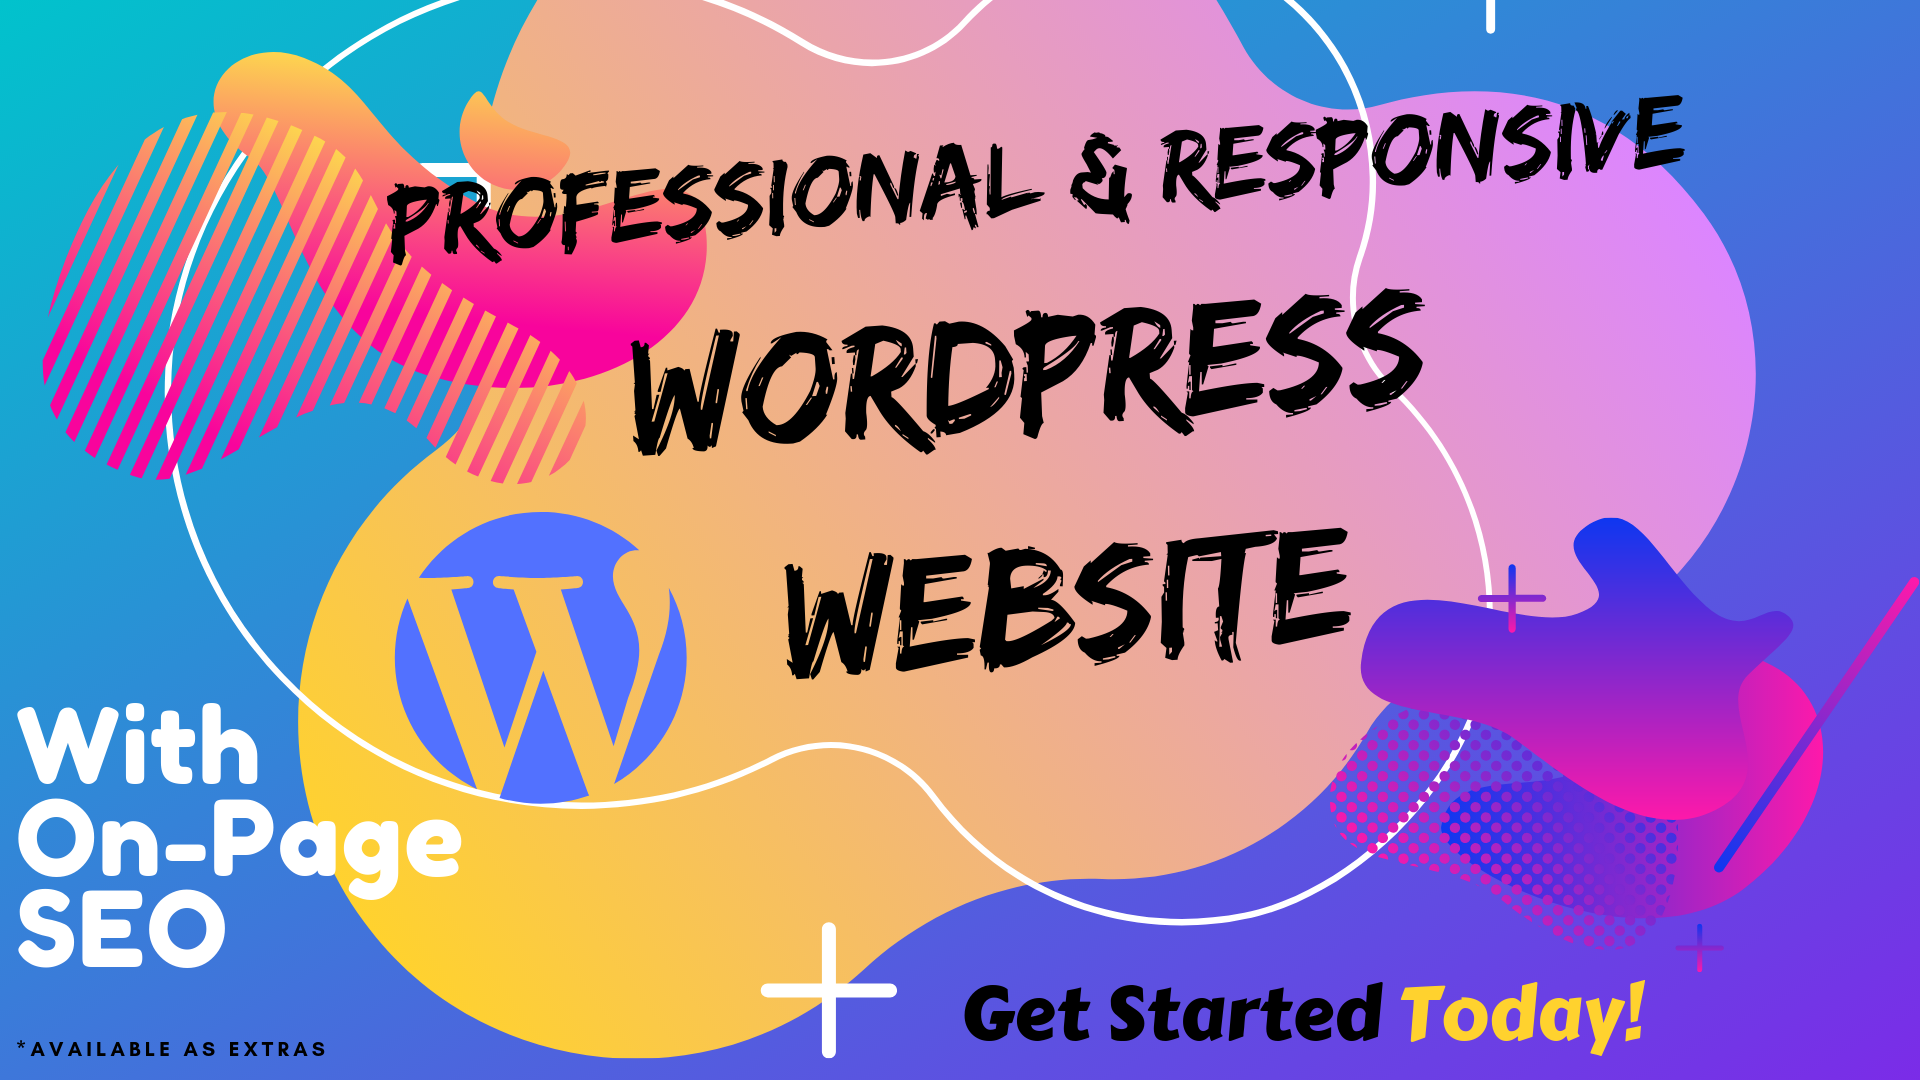 Create A Professional Wordpress Website with on-page Seo